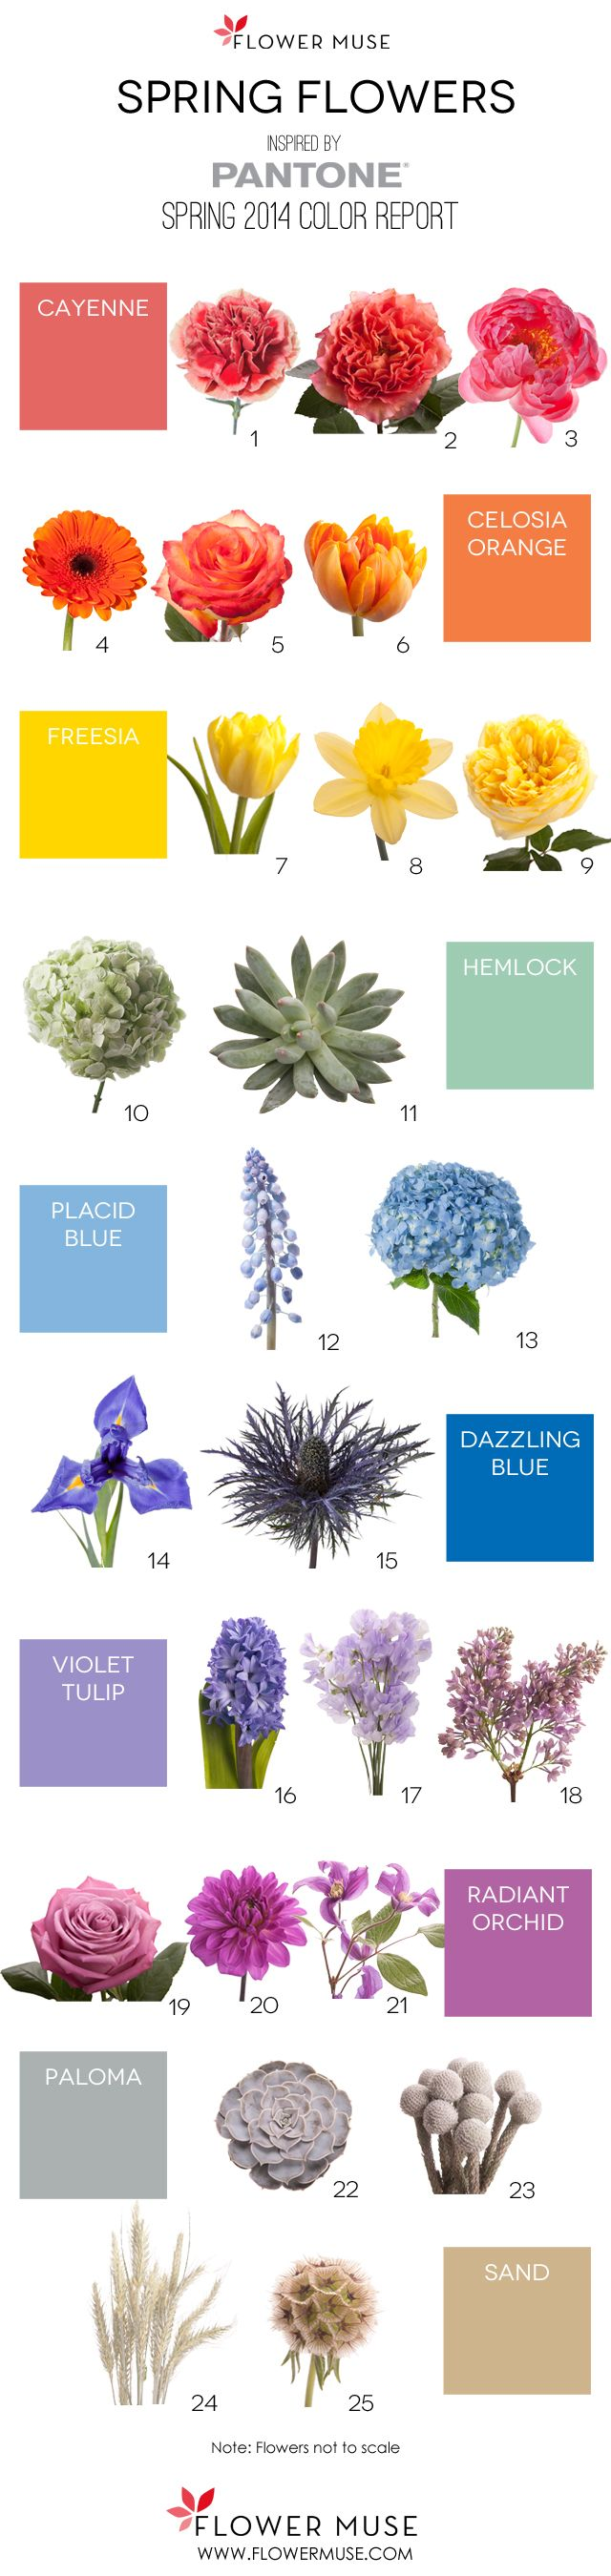 We share our picks of Spring flowers as inspired by Pantone's 2014 Spring Color Report. Get ideas for your wedding or event with this Spring inspiration!